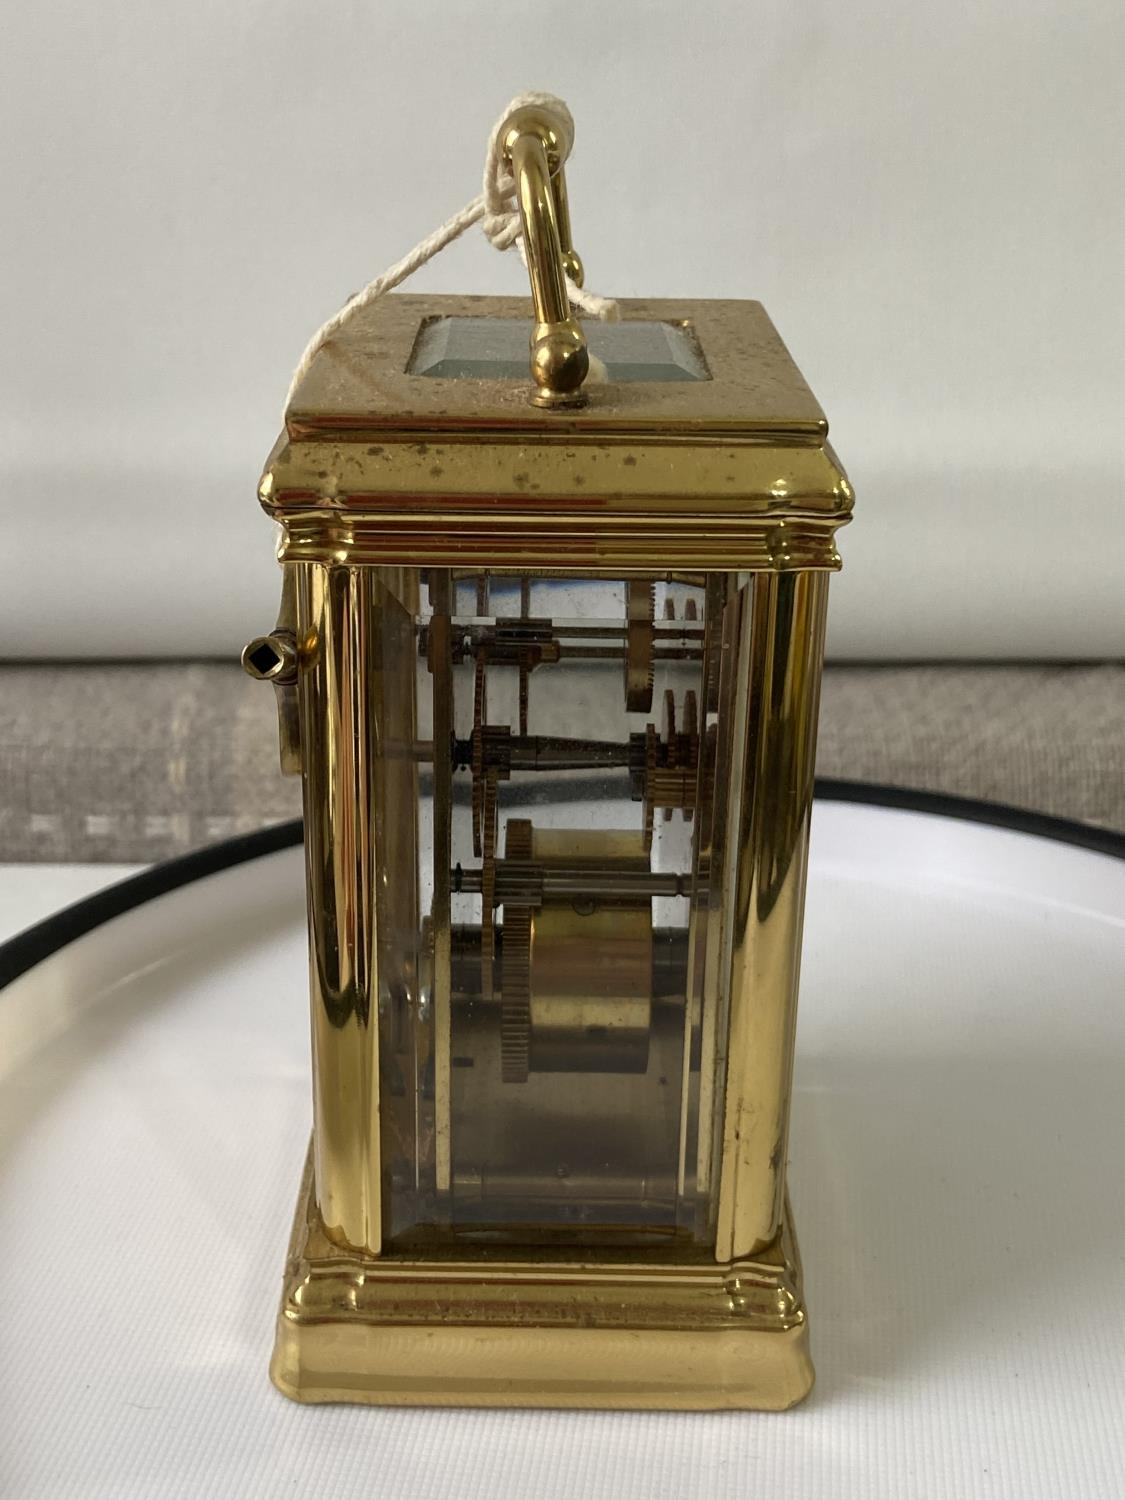 Antique heavy brass carriage clock [Rapport London] [MVT No 1800] in a working condition and with - Image 3 of 12